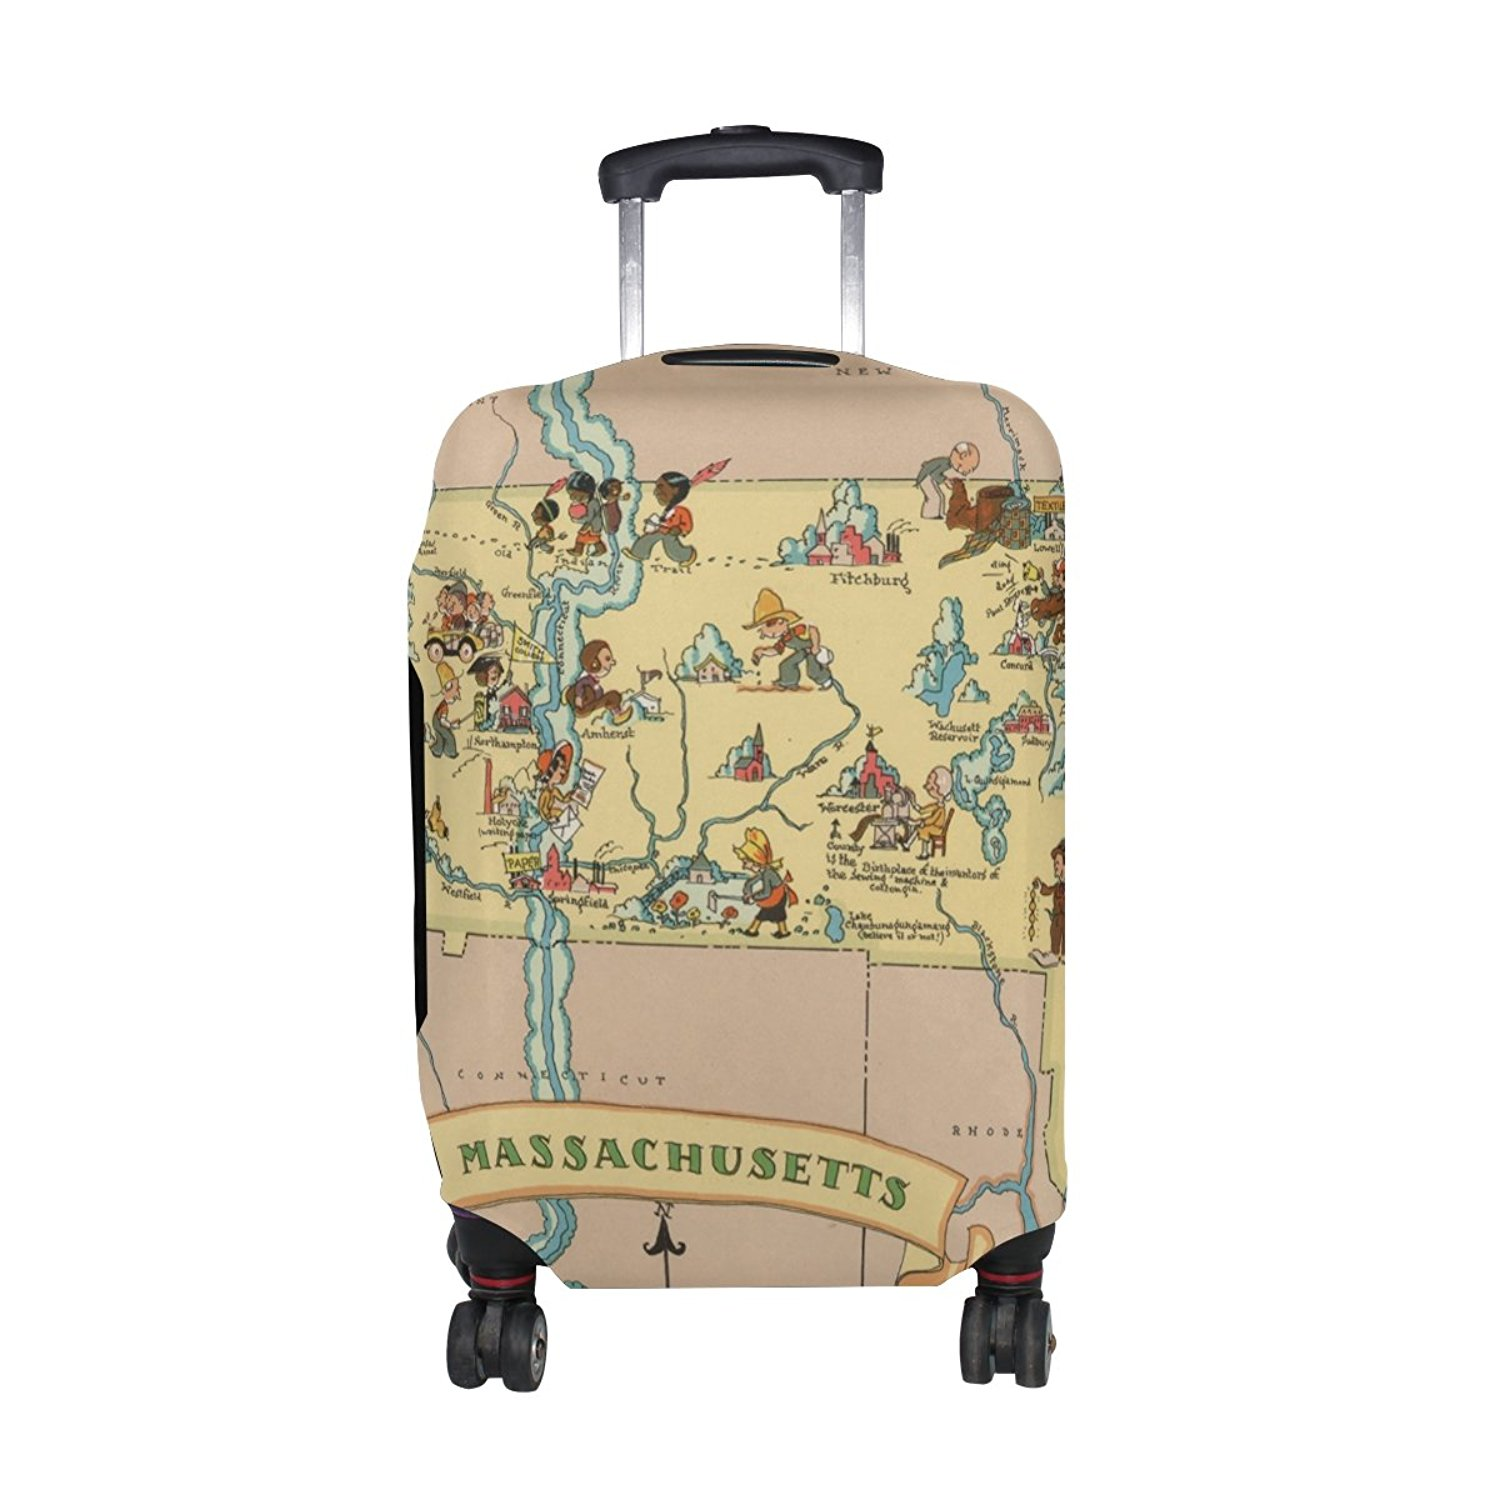 d36dd7be6ab5 Cheap Vintage Suitcase Travel, find Vintage Suitcase Travel deals on ...